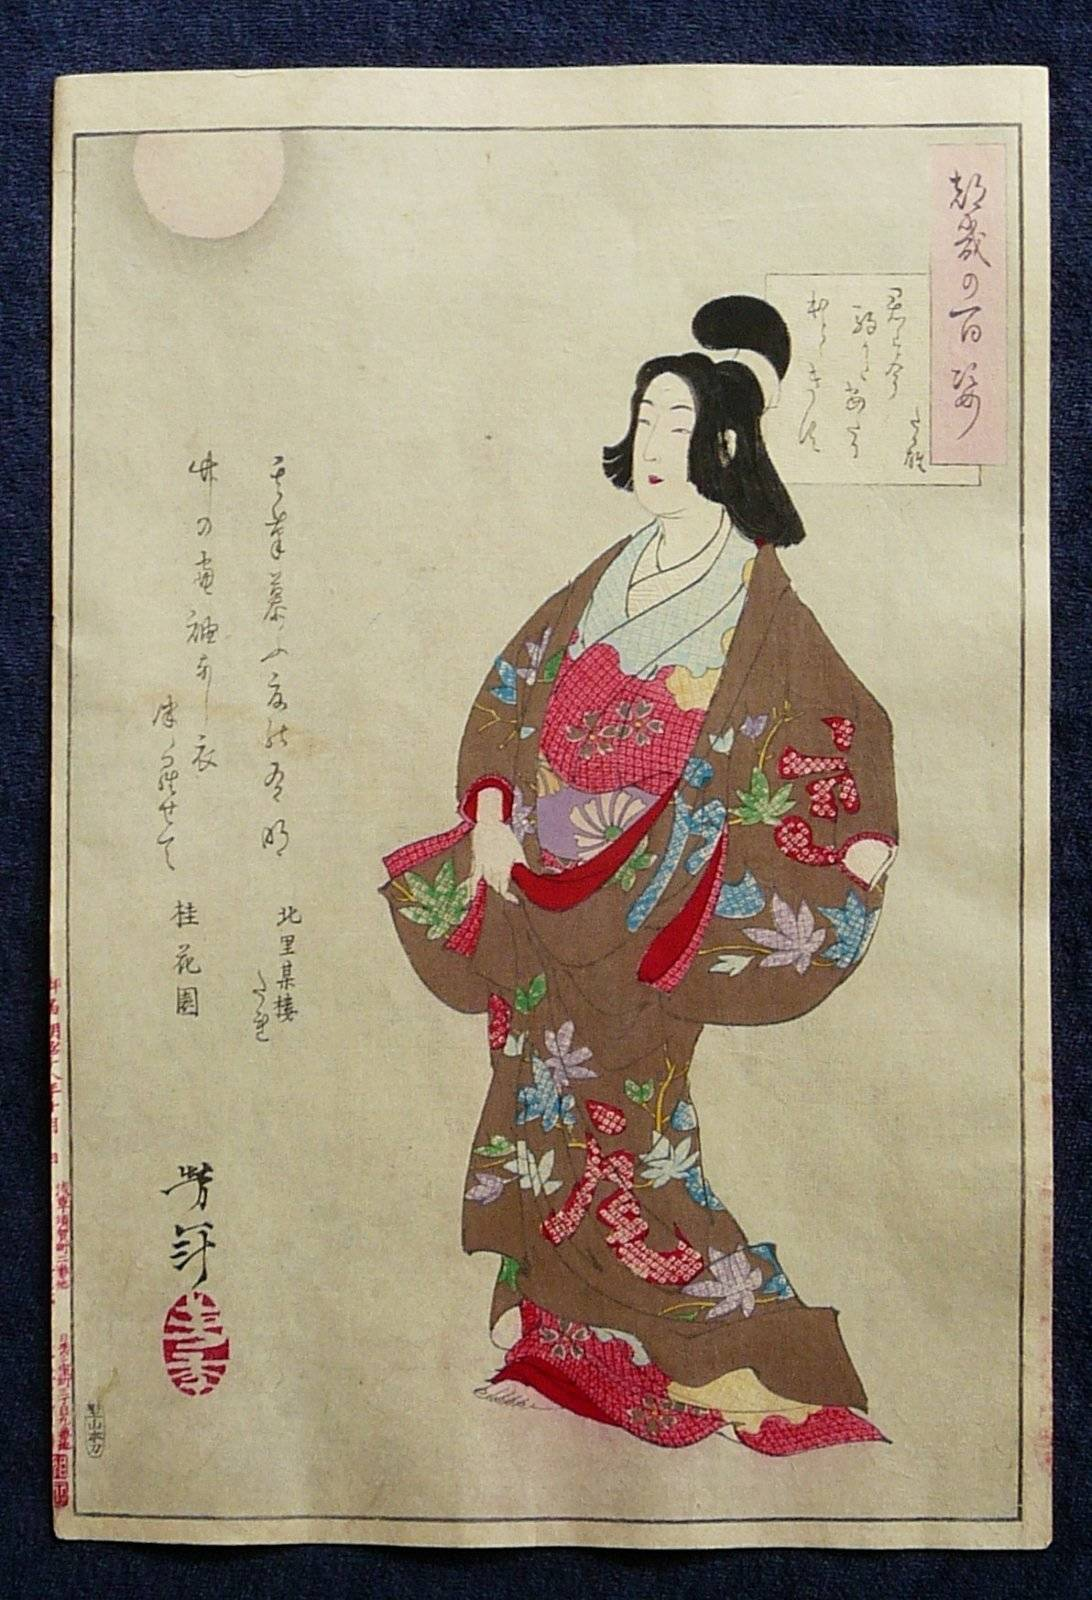 TAISO YOSHITOSHI: #P3610 THE COURTESAN TAKAO FROM 100 ASPECTS OF THE MOON SERIES